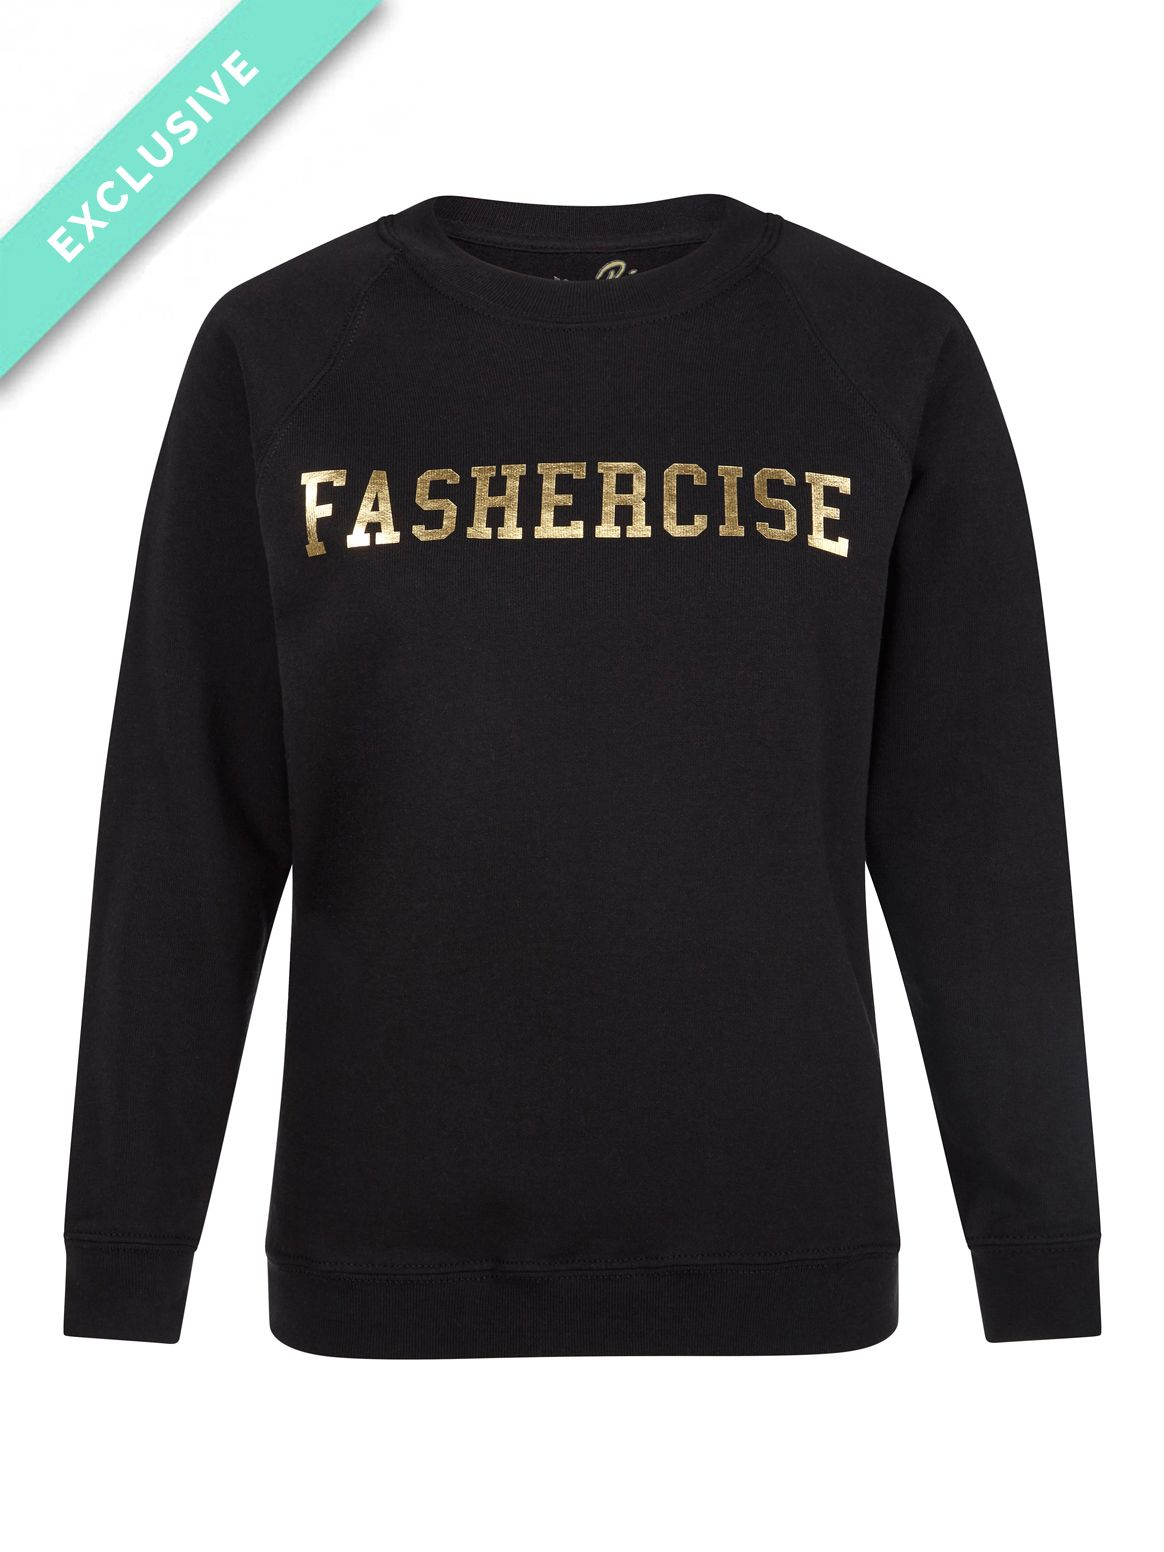 Lounge in style with this exclusive On The Rise 'Fashercise' sweatshirt!